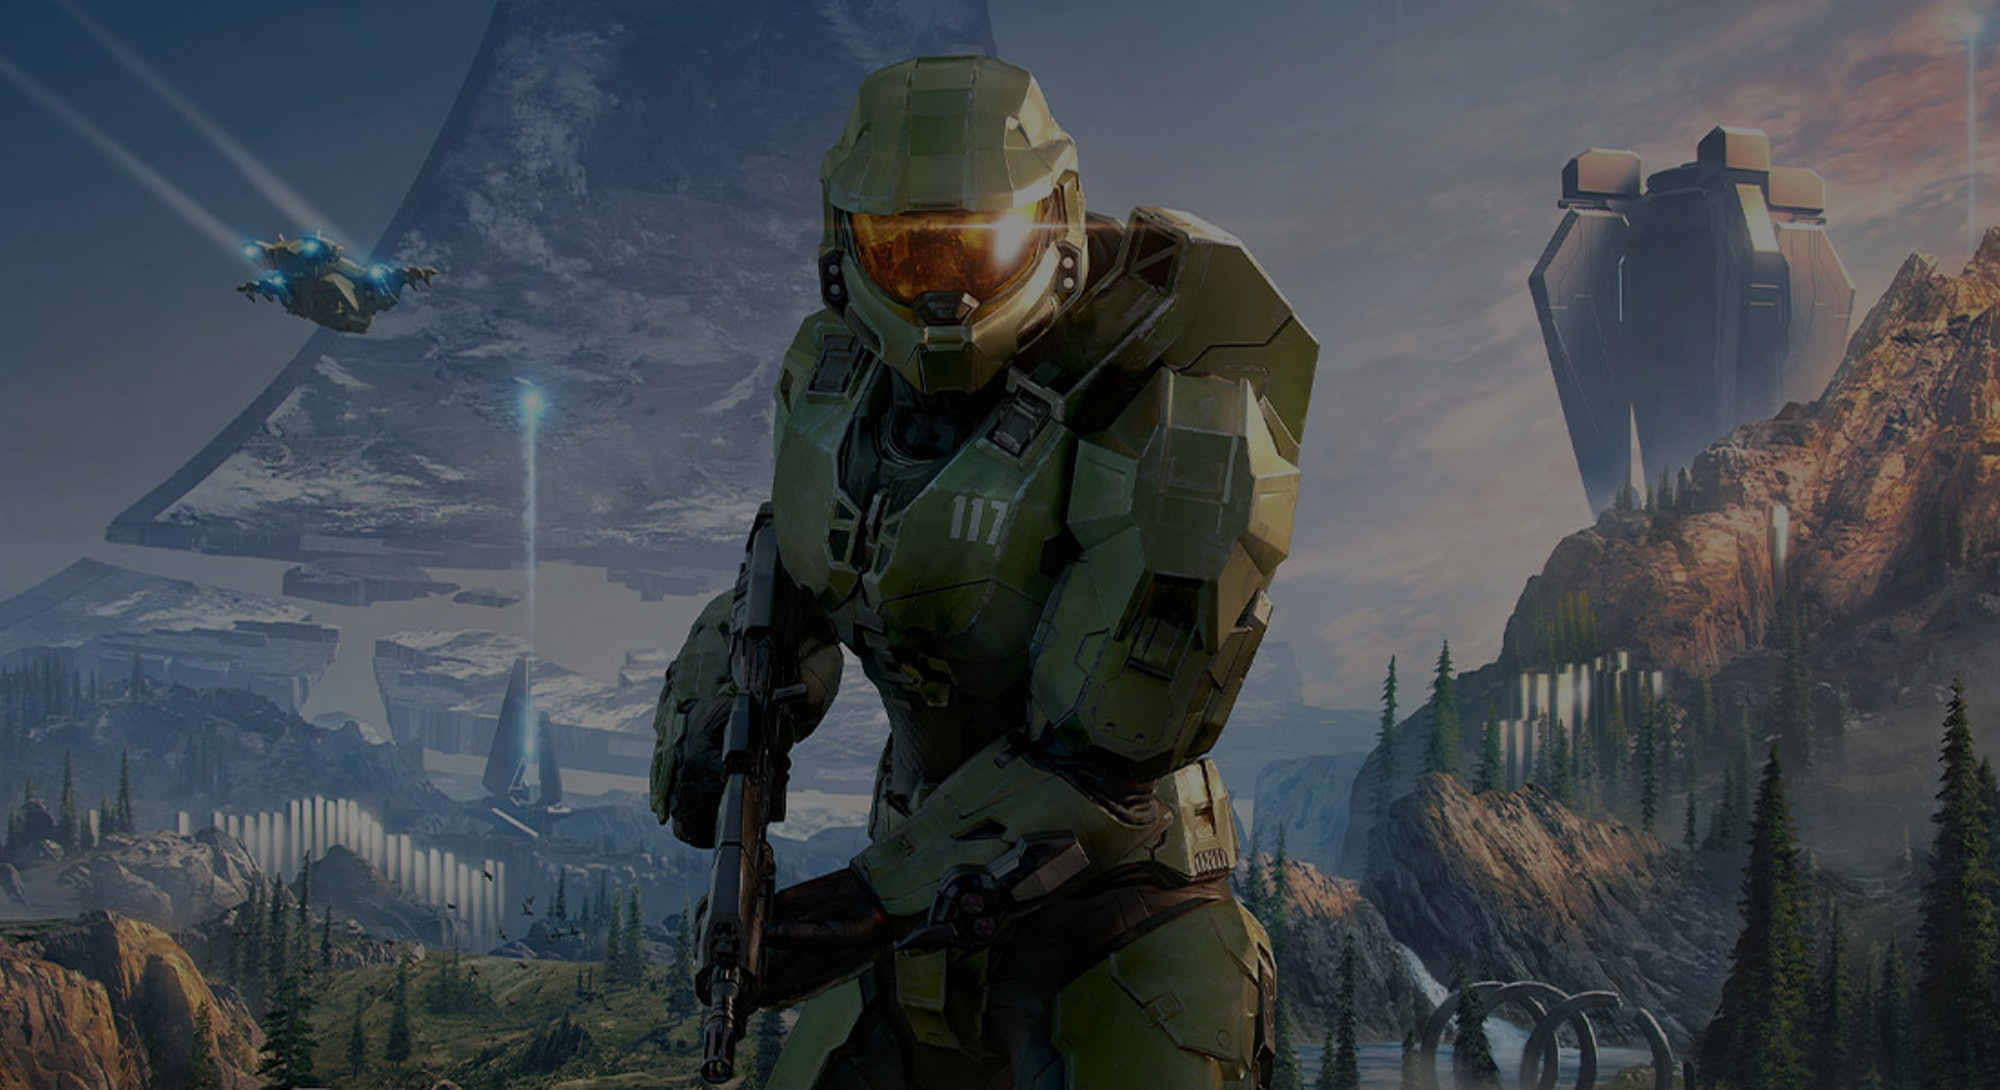 illustration of Master Chief from Halo Infinite